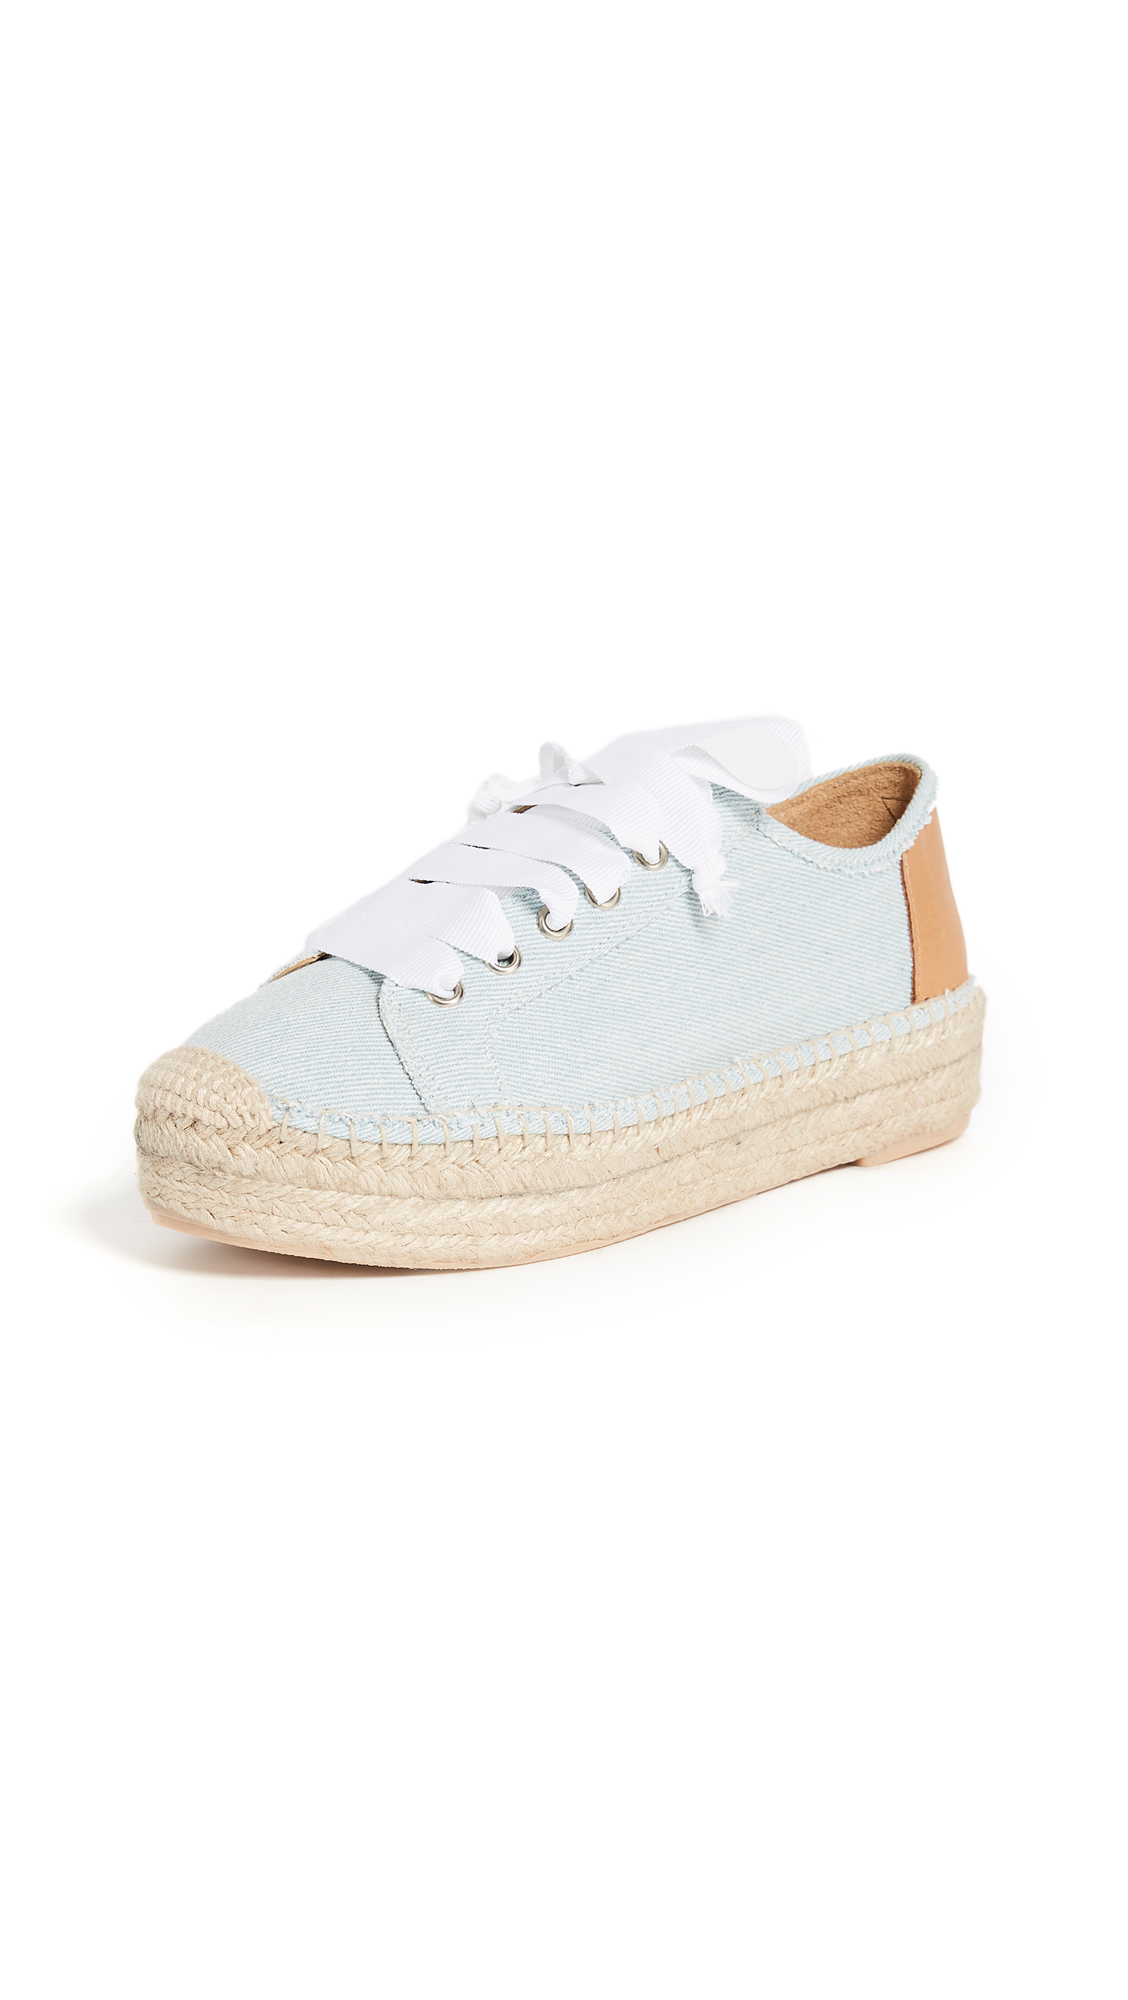 Matt Bernson Eze Laceup Espadrilles - Light Denim